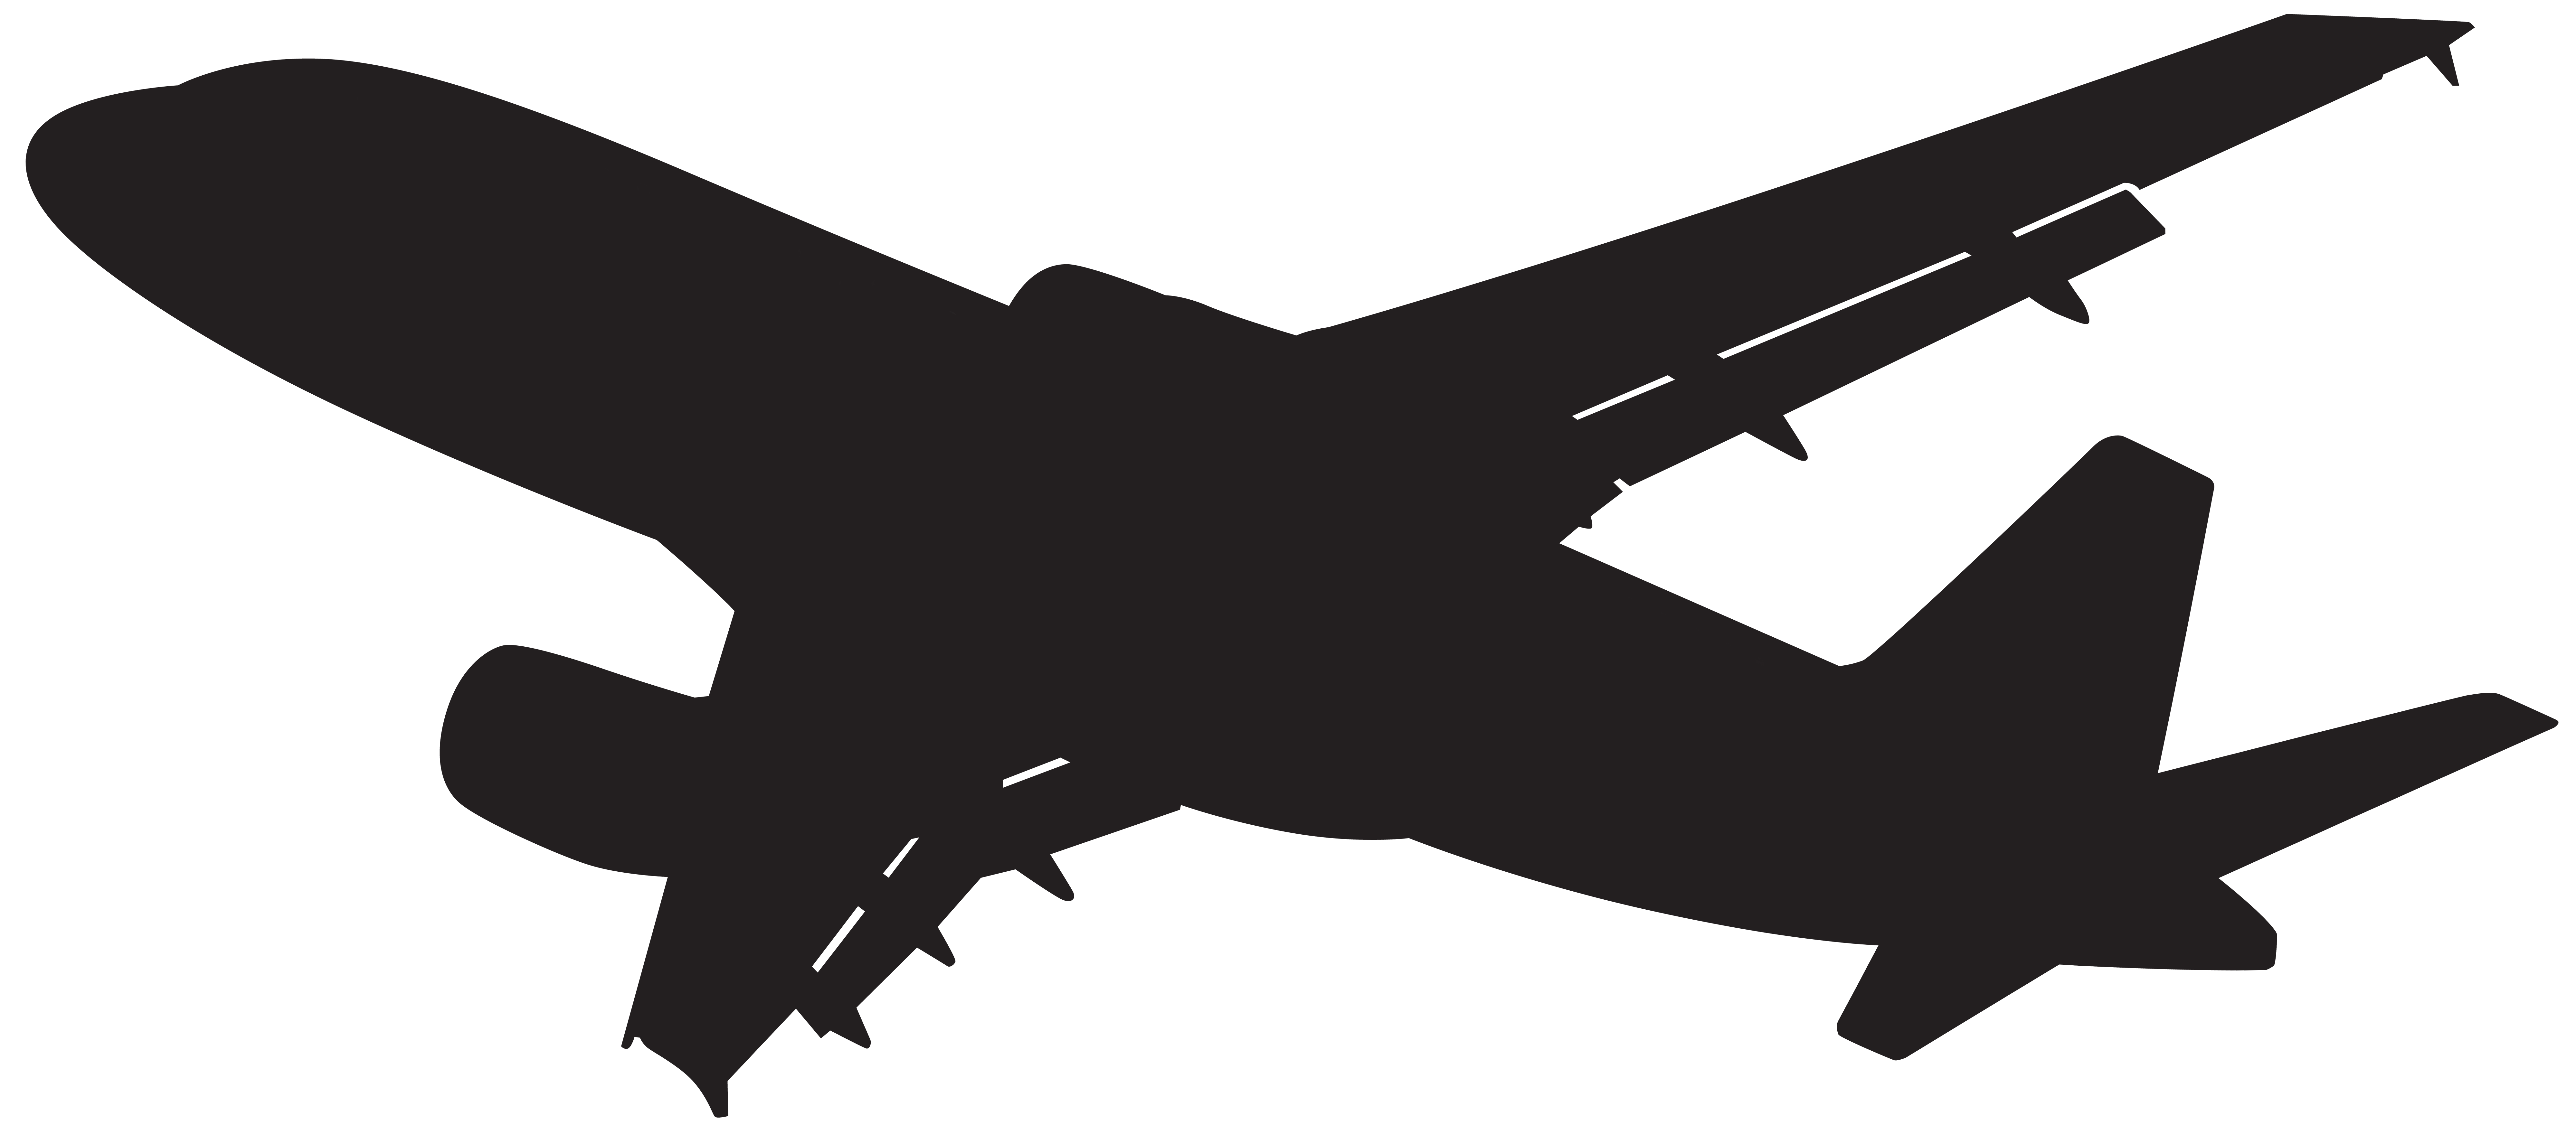 png free library Chic and creative silhouette. Plane clipart.